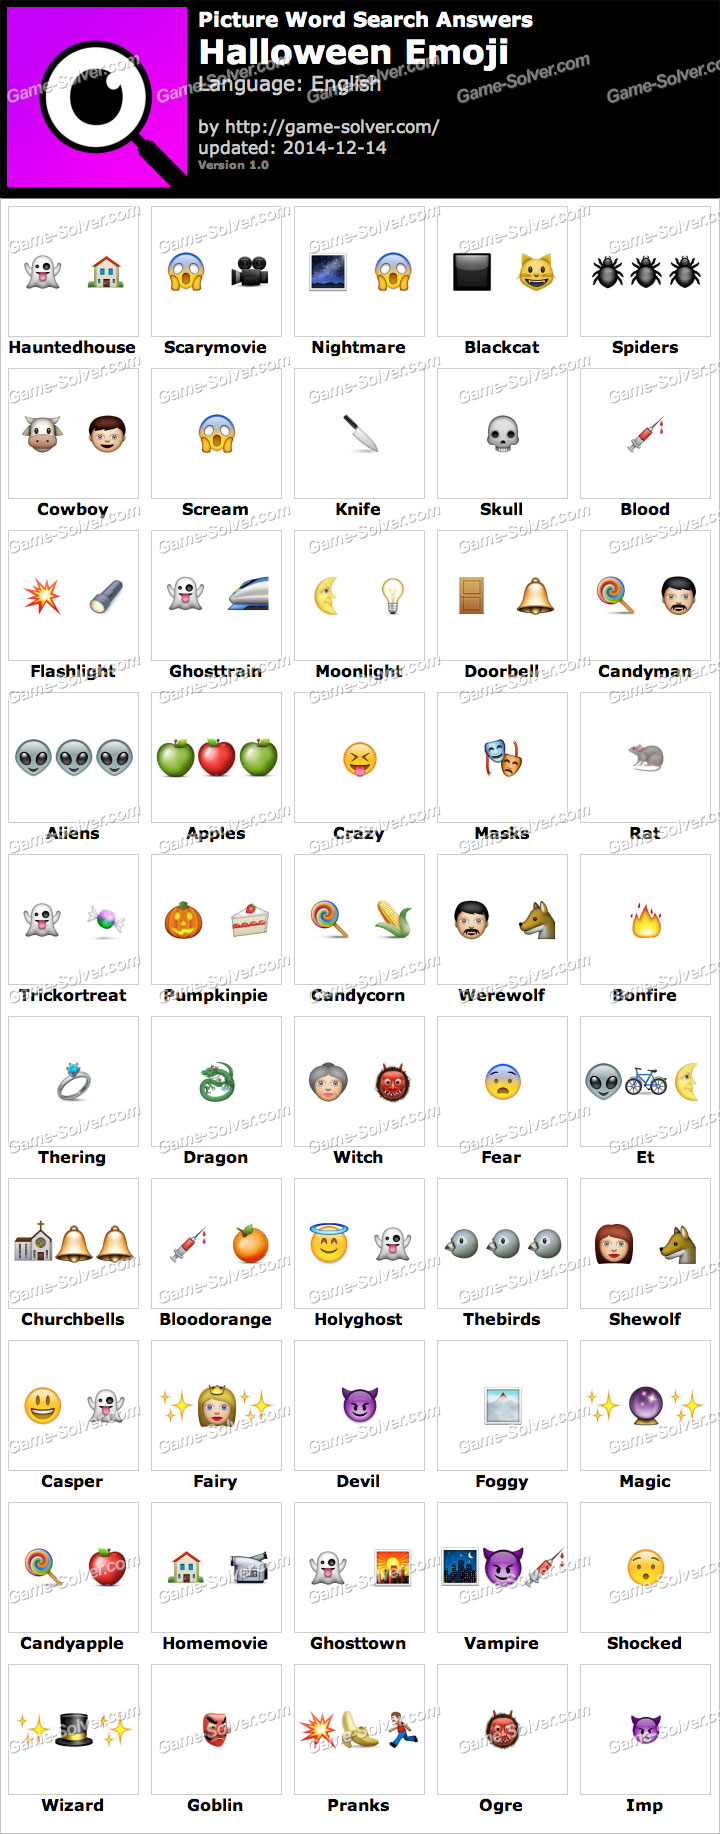 picture word search halloween emoji answers